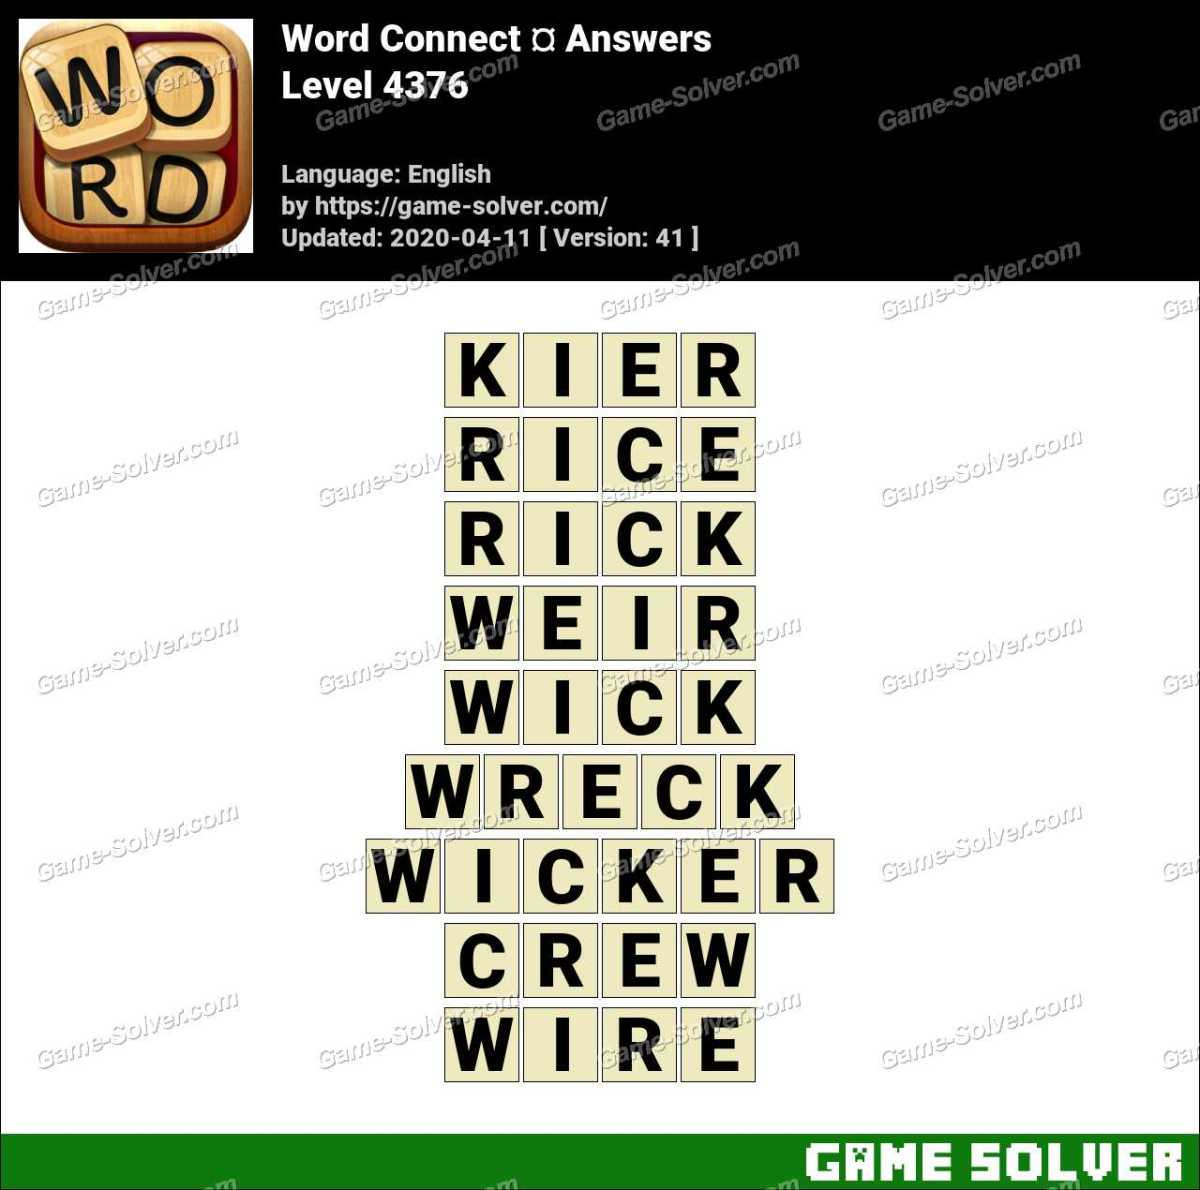 Word Connect Level 4376 Answers